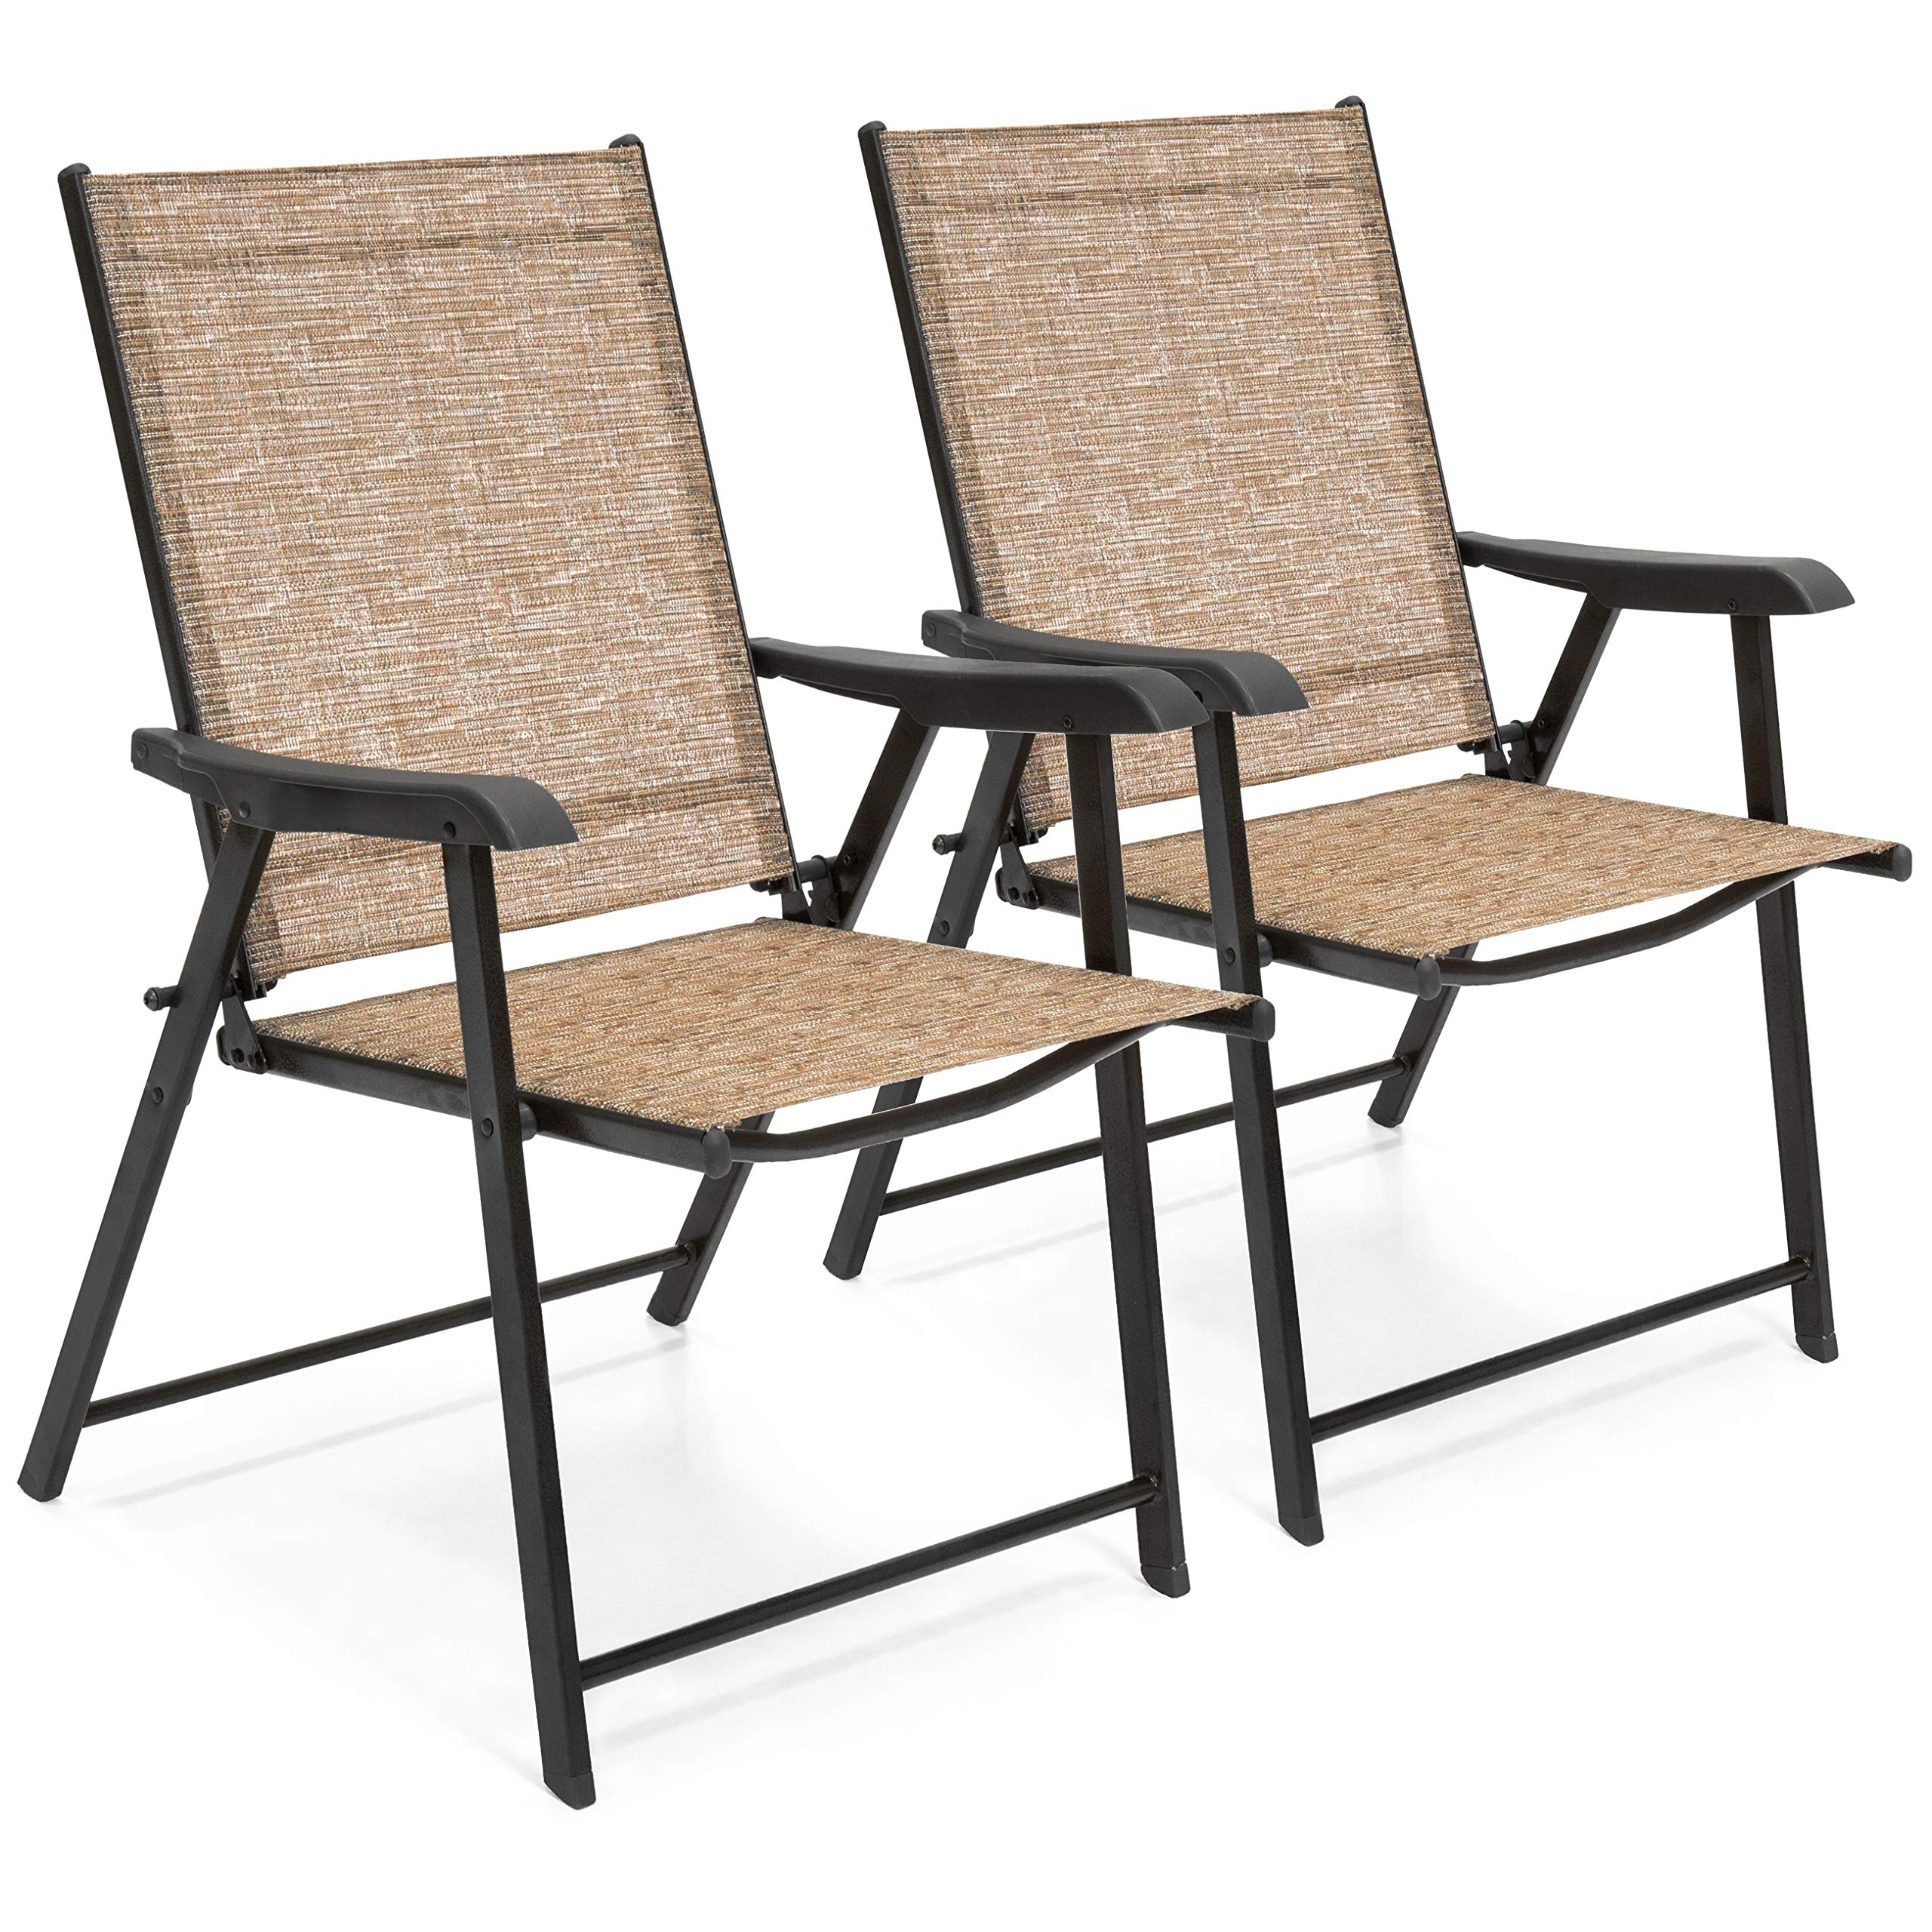 Best Choice Products Set of 2 Outdoor Mesh Patio Folding Sling Back Chairs w/Steel Frame, Brown by Best Choice Products